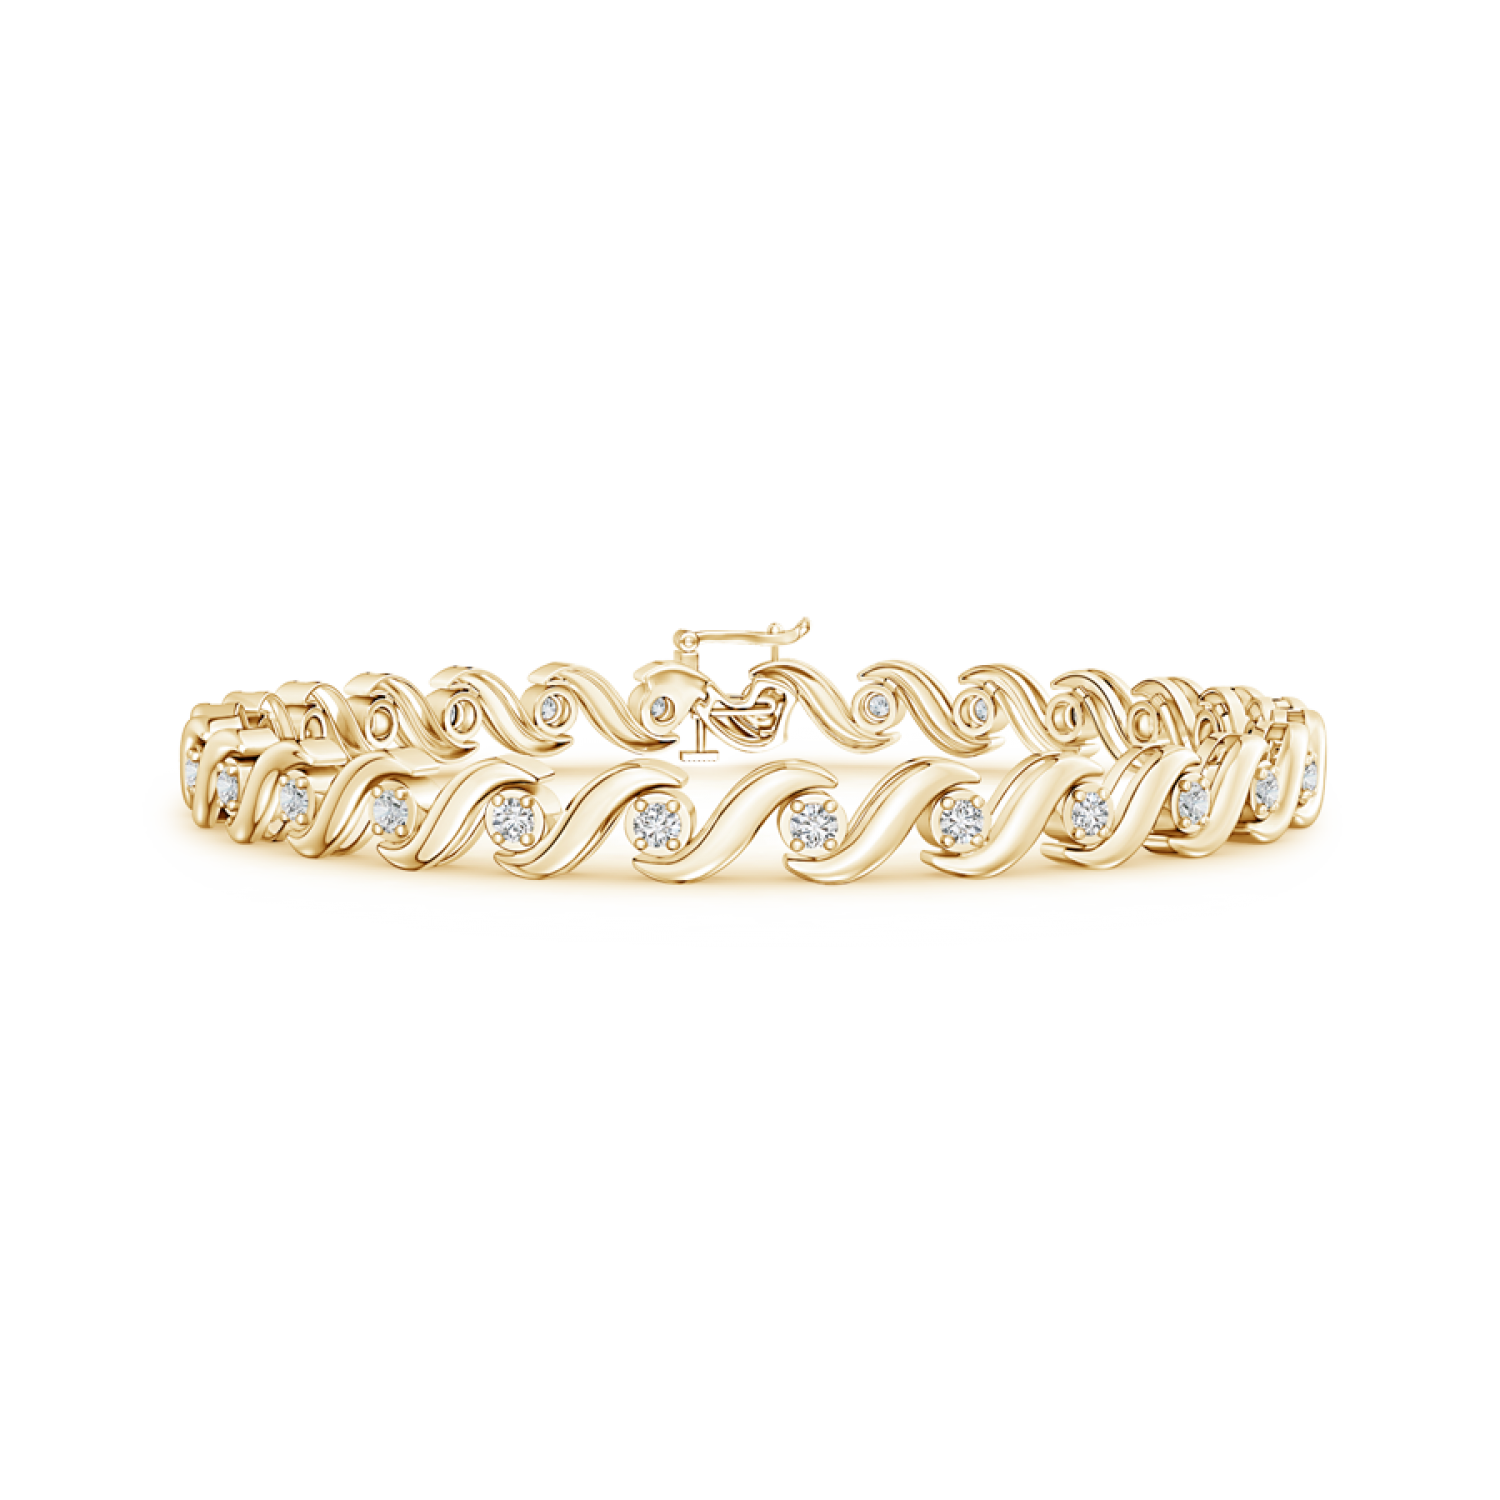 Lab Grown Diamond S Swirl Link Tennis Bracelet - Main Image